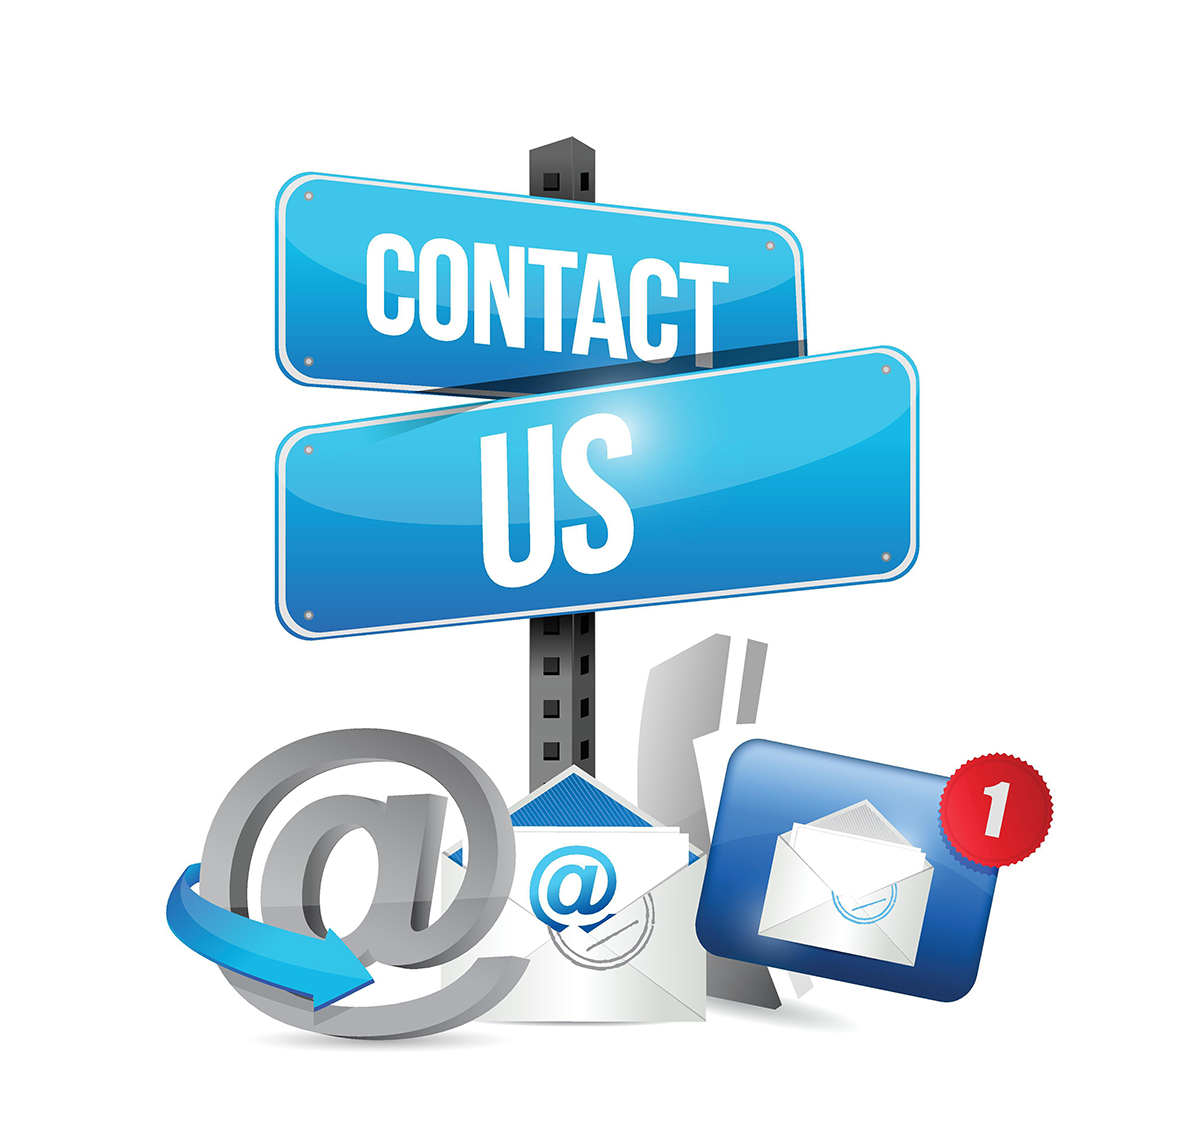 contact-us-sign-w-icons1200.jpg